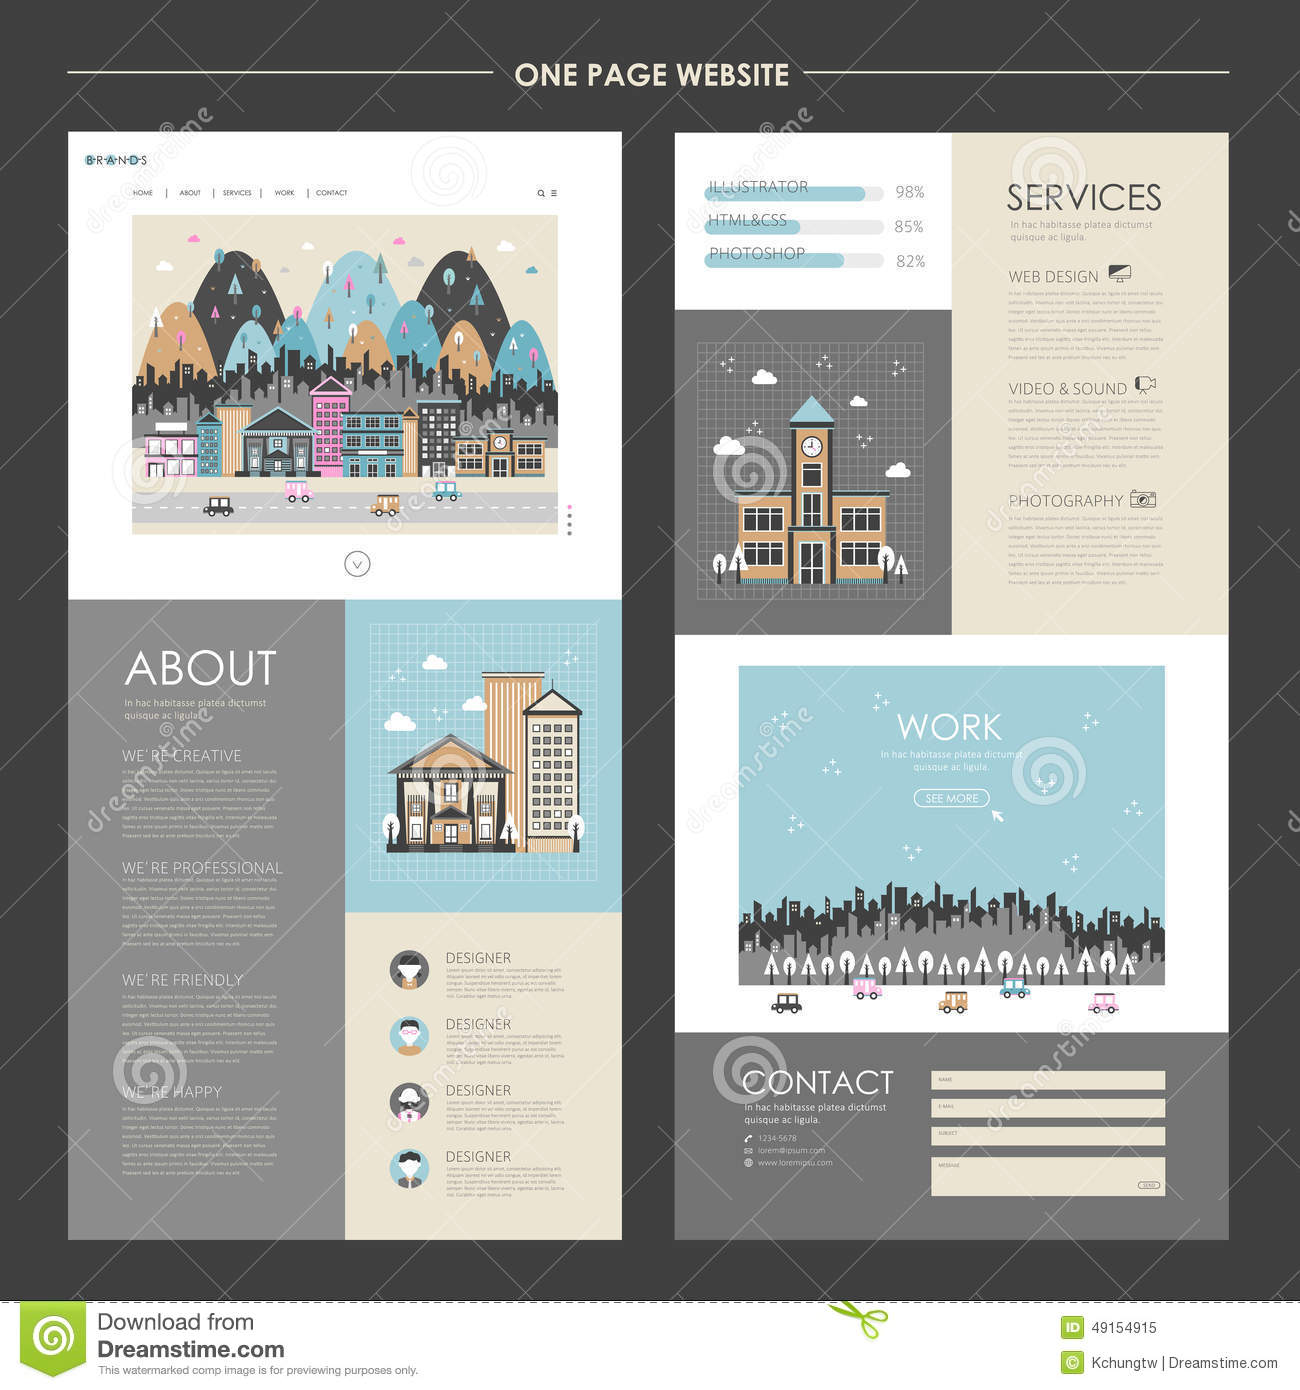 Lovely cityscape one page website design